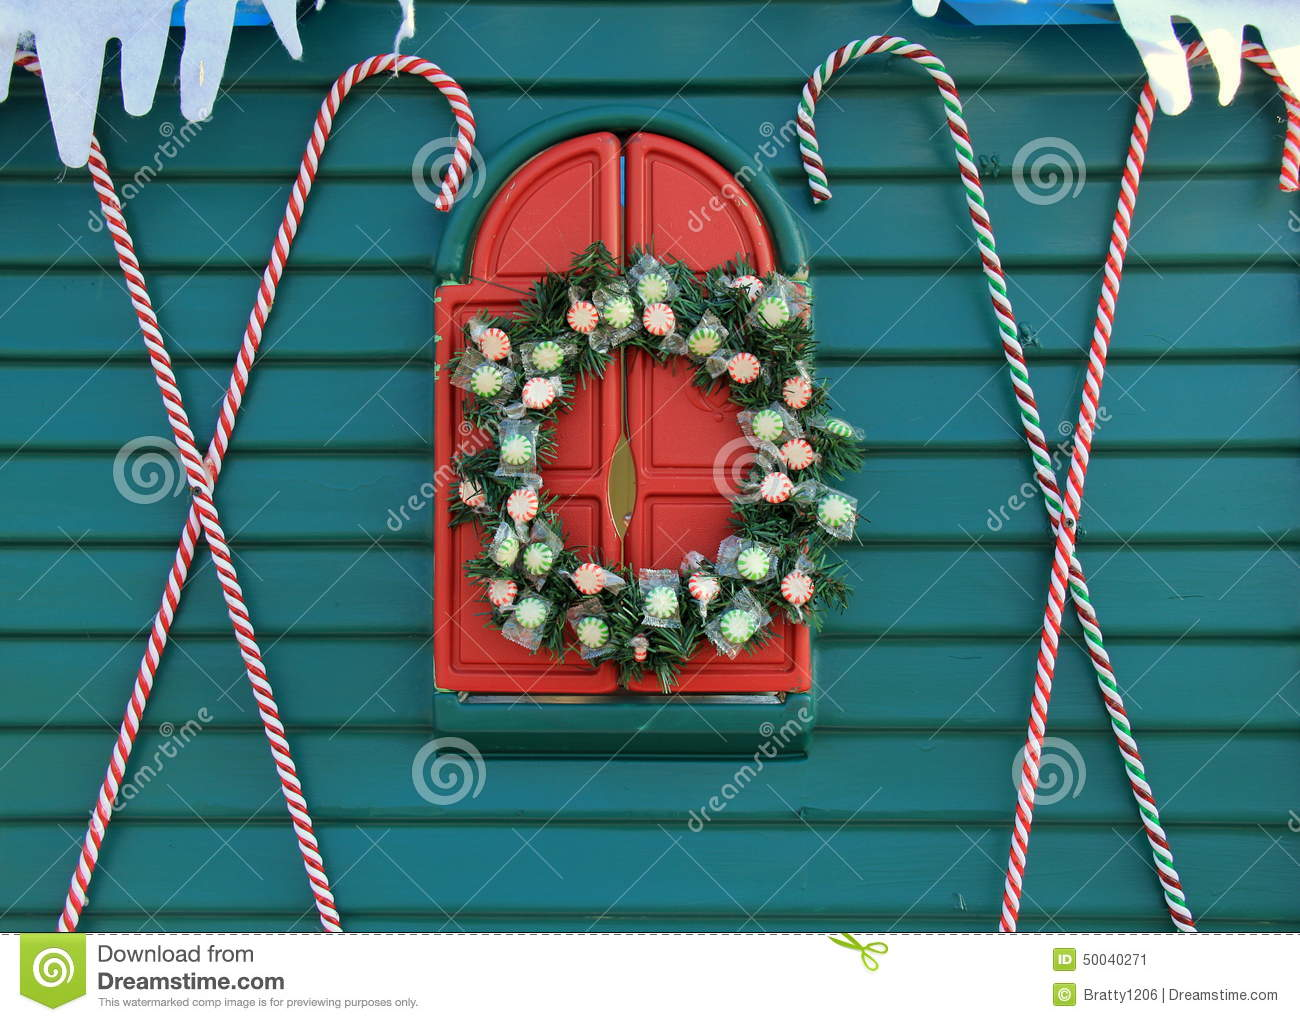 Teal Blue Wall With Candy Canes And Holiday Wreath Stock Image Image Of Decorative Icicles 50040271